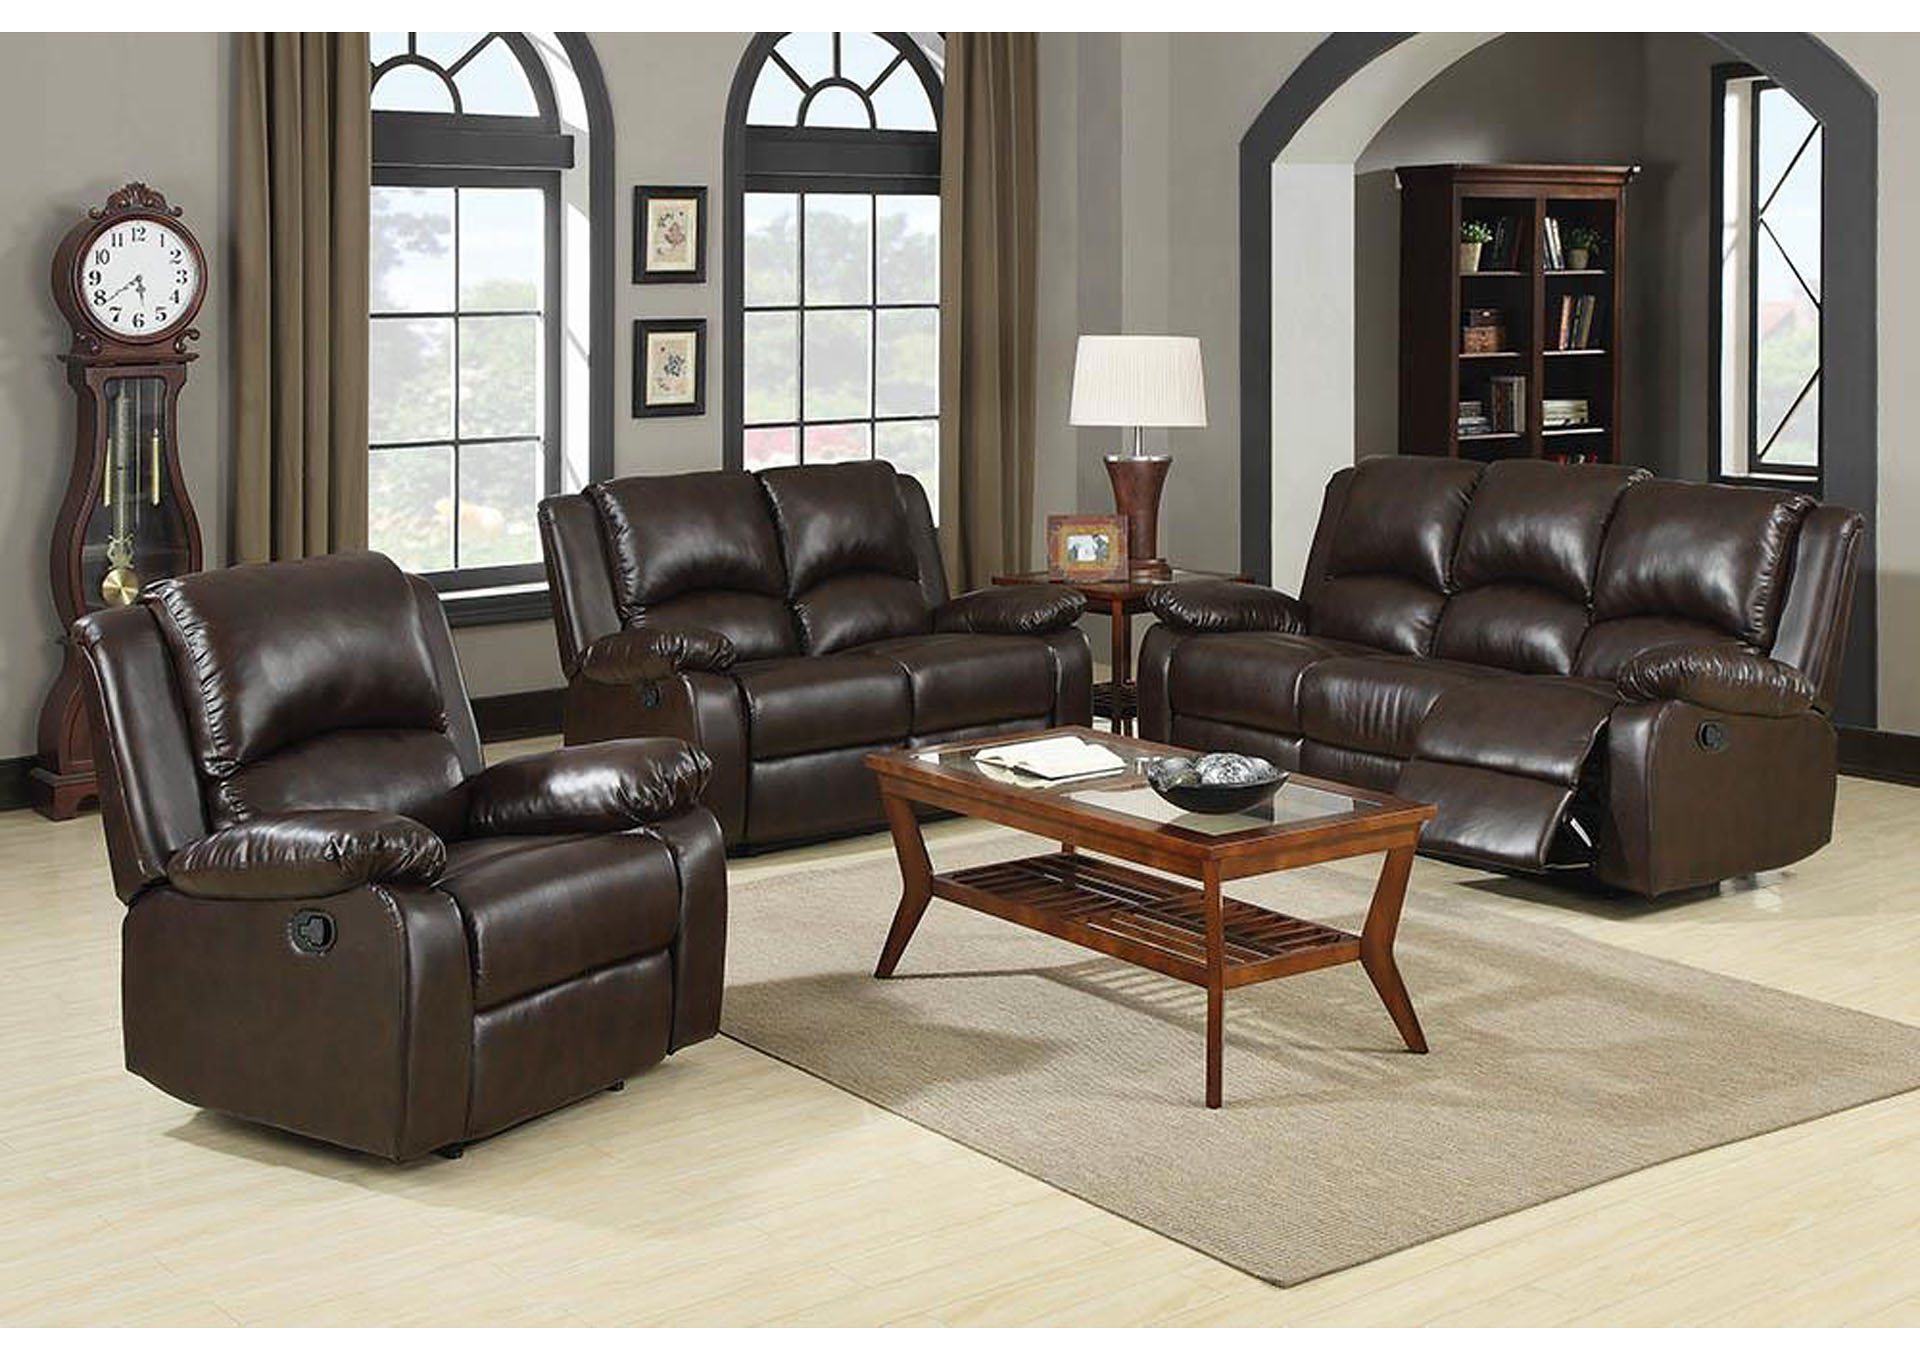 Magnificent Tempo Collection Boston Brown Reclining Sofa Gmtry Best Dining Table And Chair Ideas Images Gmtryco